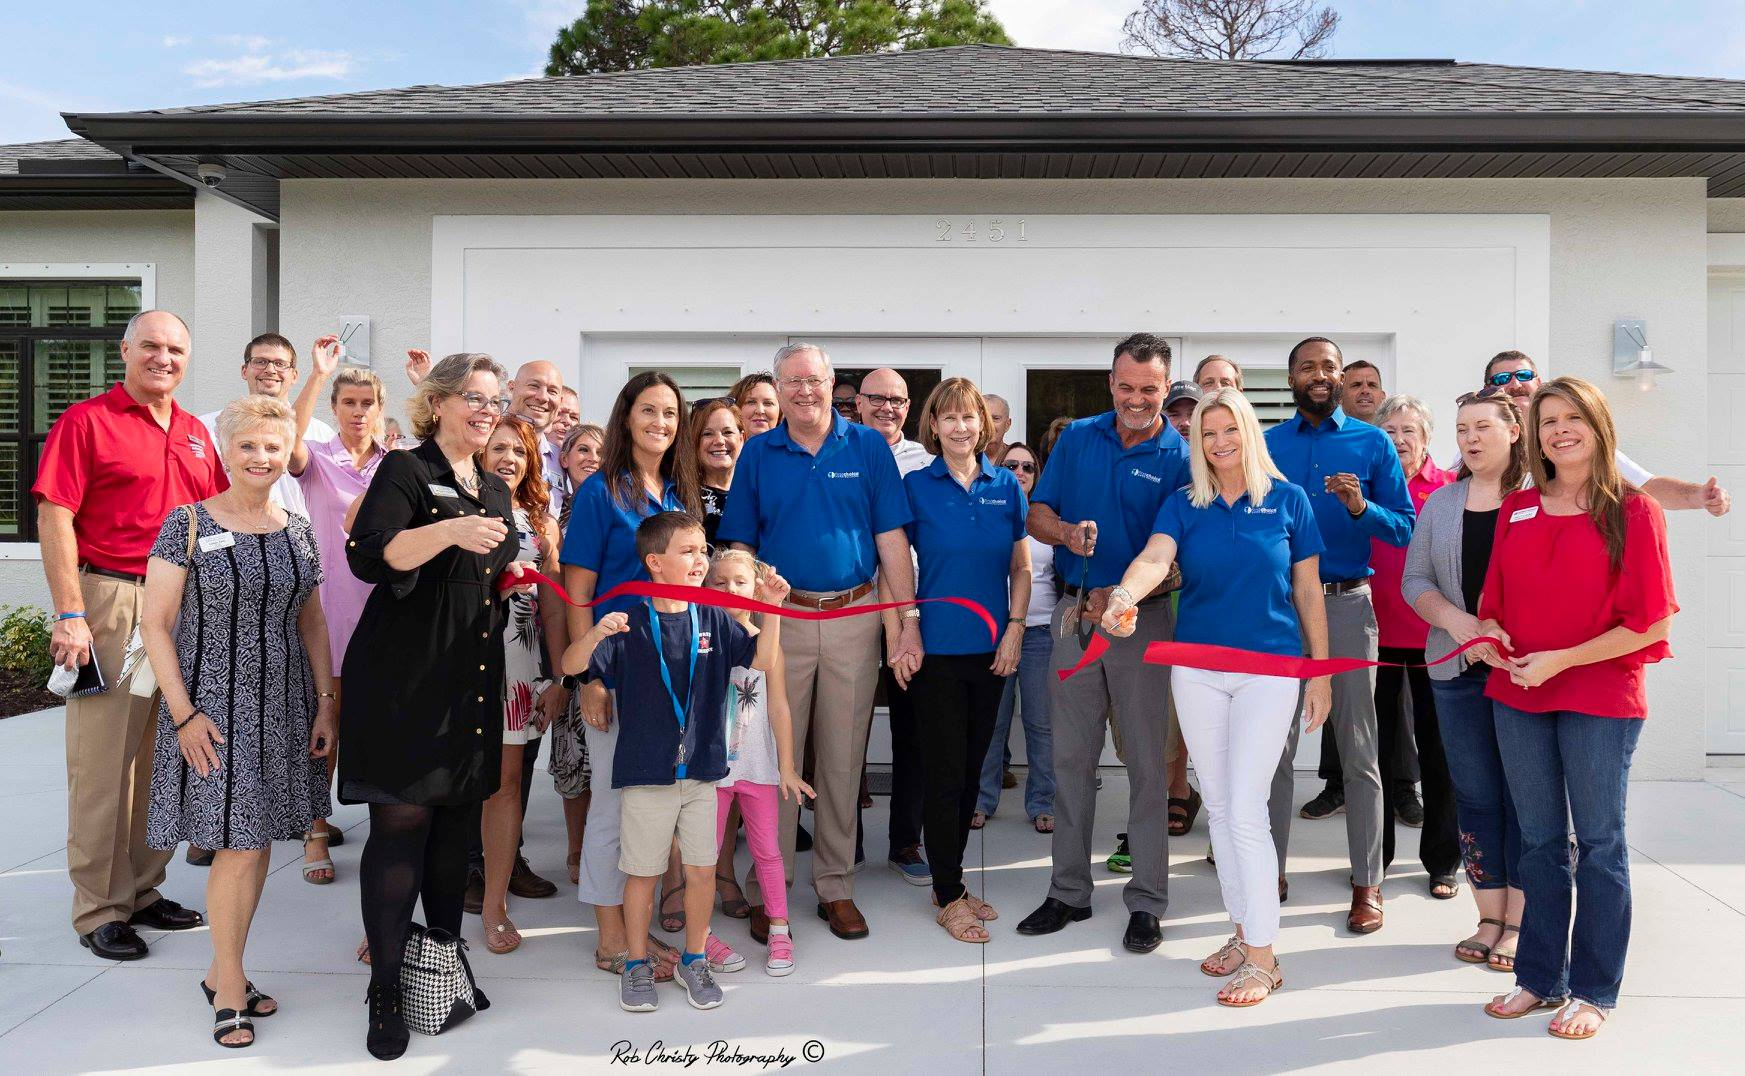 Ribon Cutting at our North Port Builders Model Home